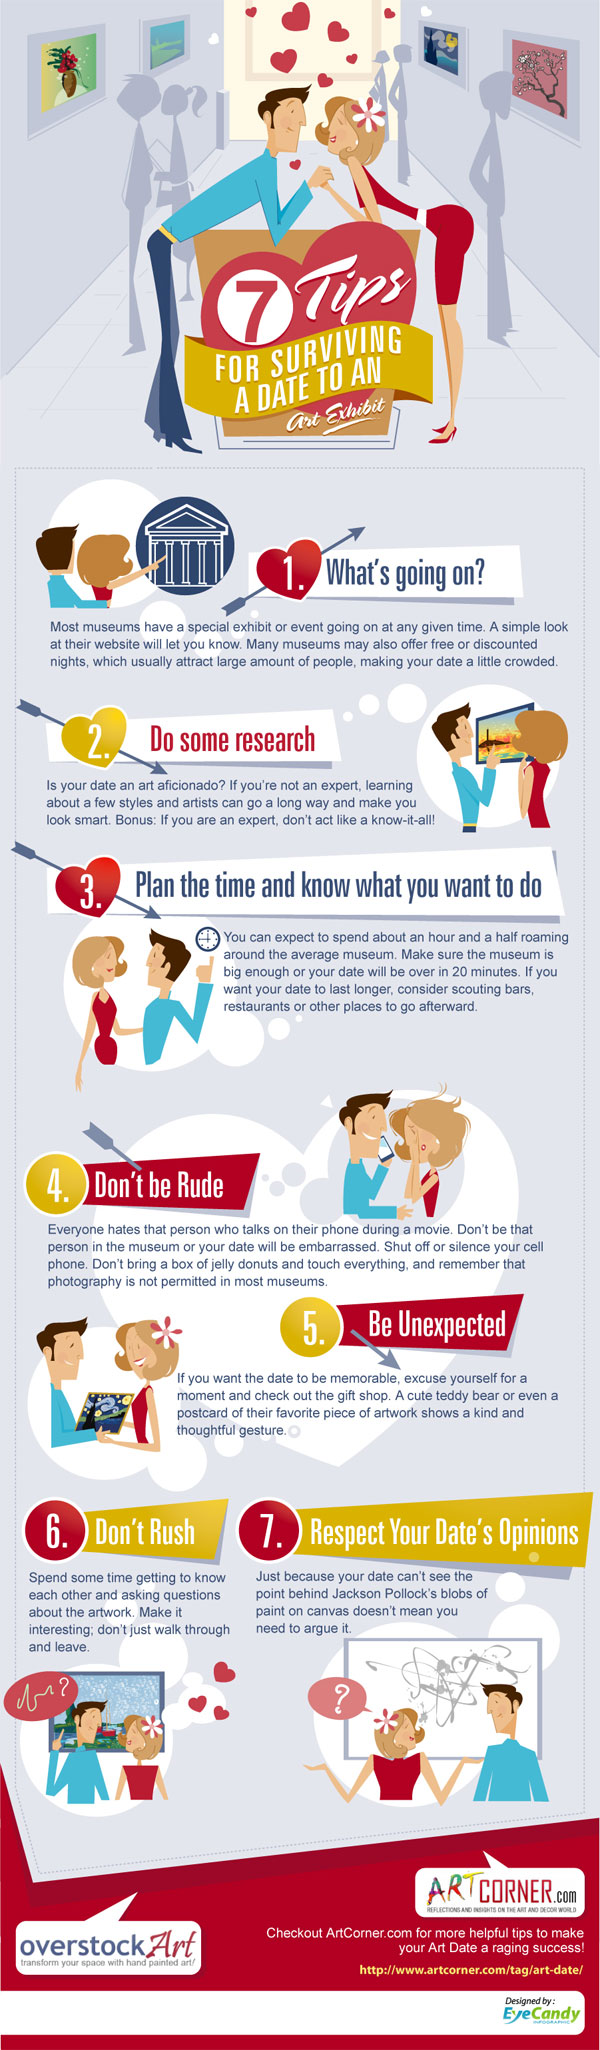 7 Tips Surviving a Date to the Art Museum Infograph